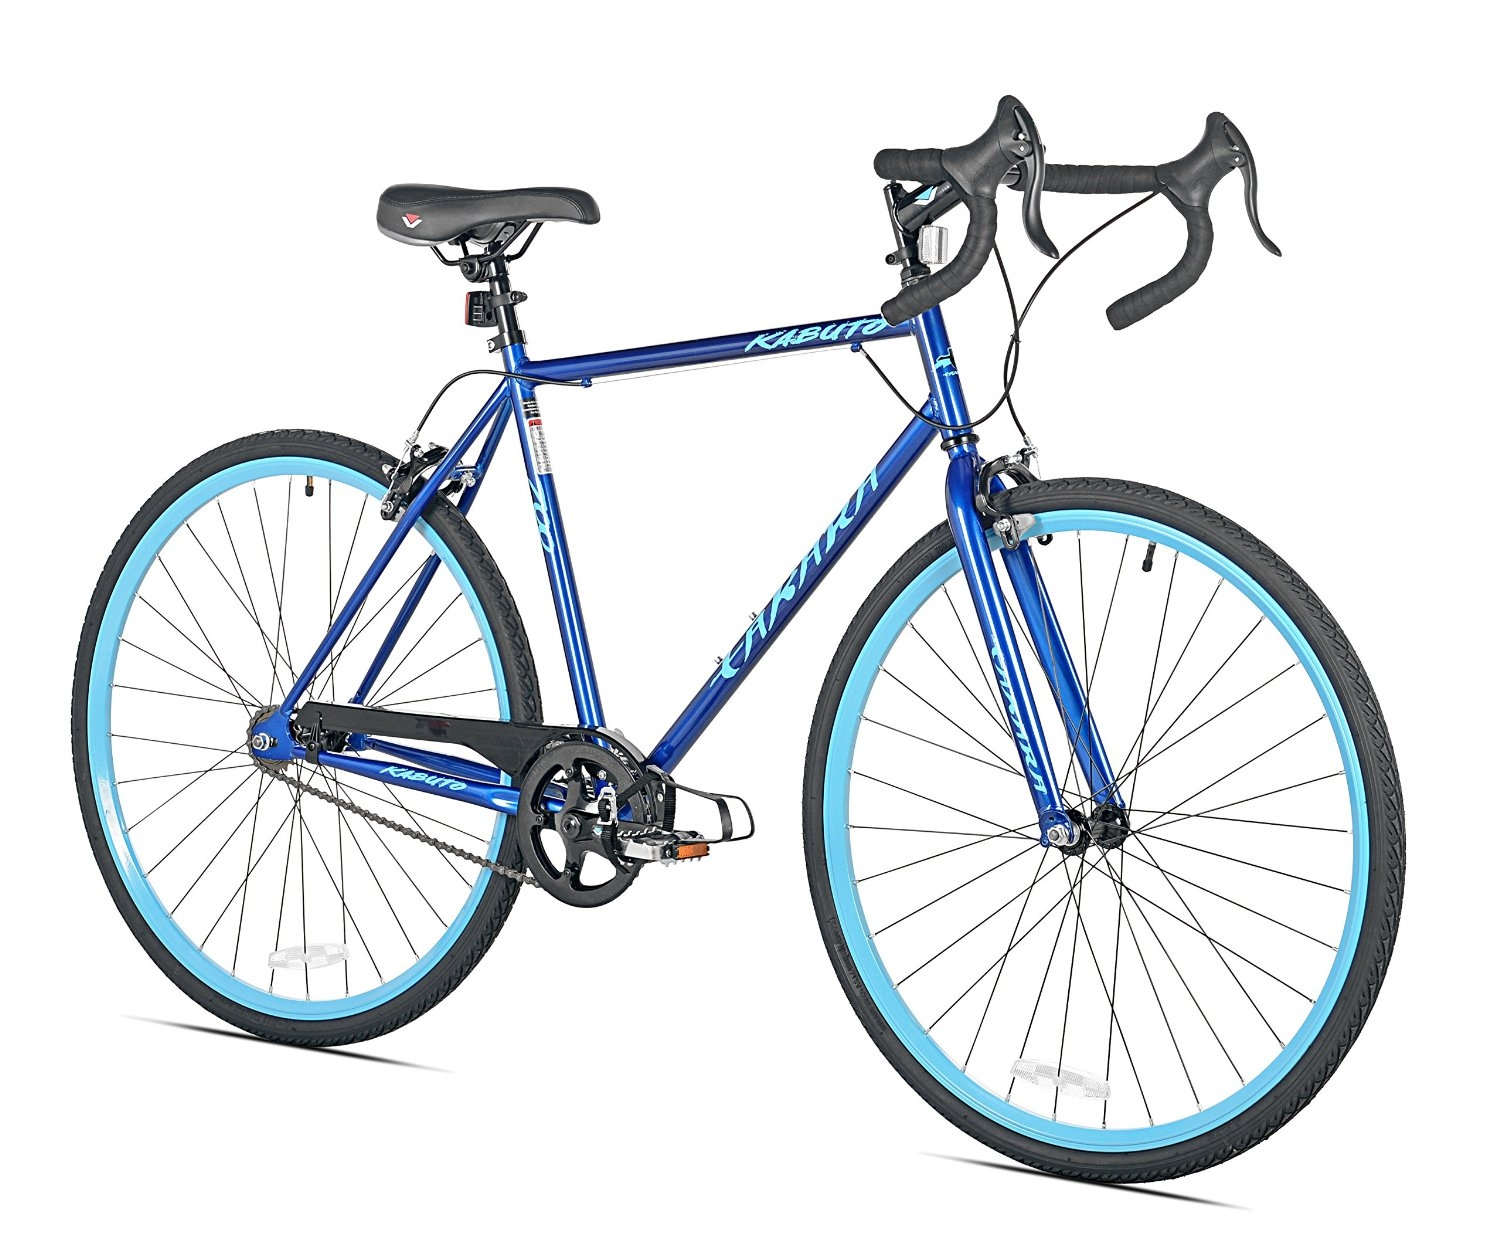 Takara Kabuto Single Speed Road Bike, Cheap & Durable | Free Shipping